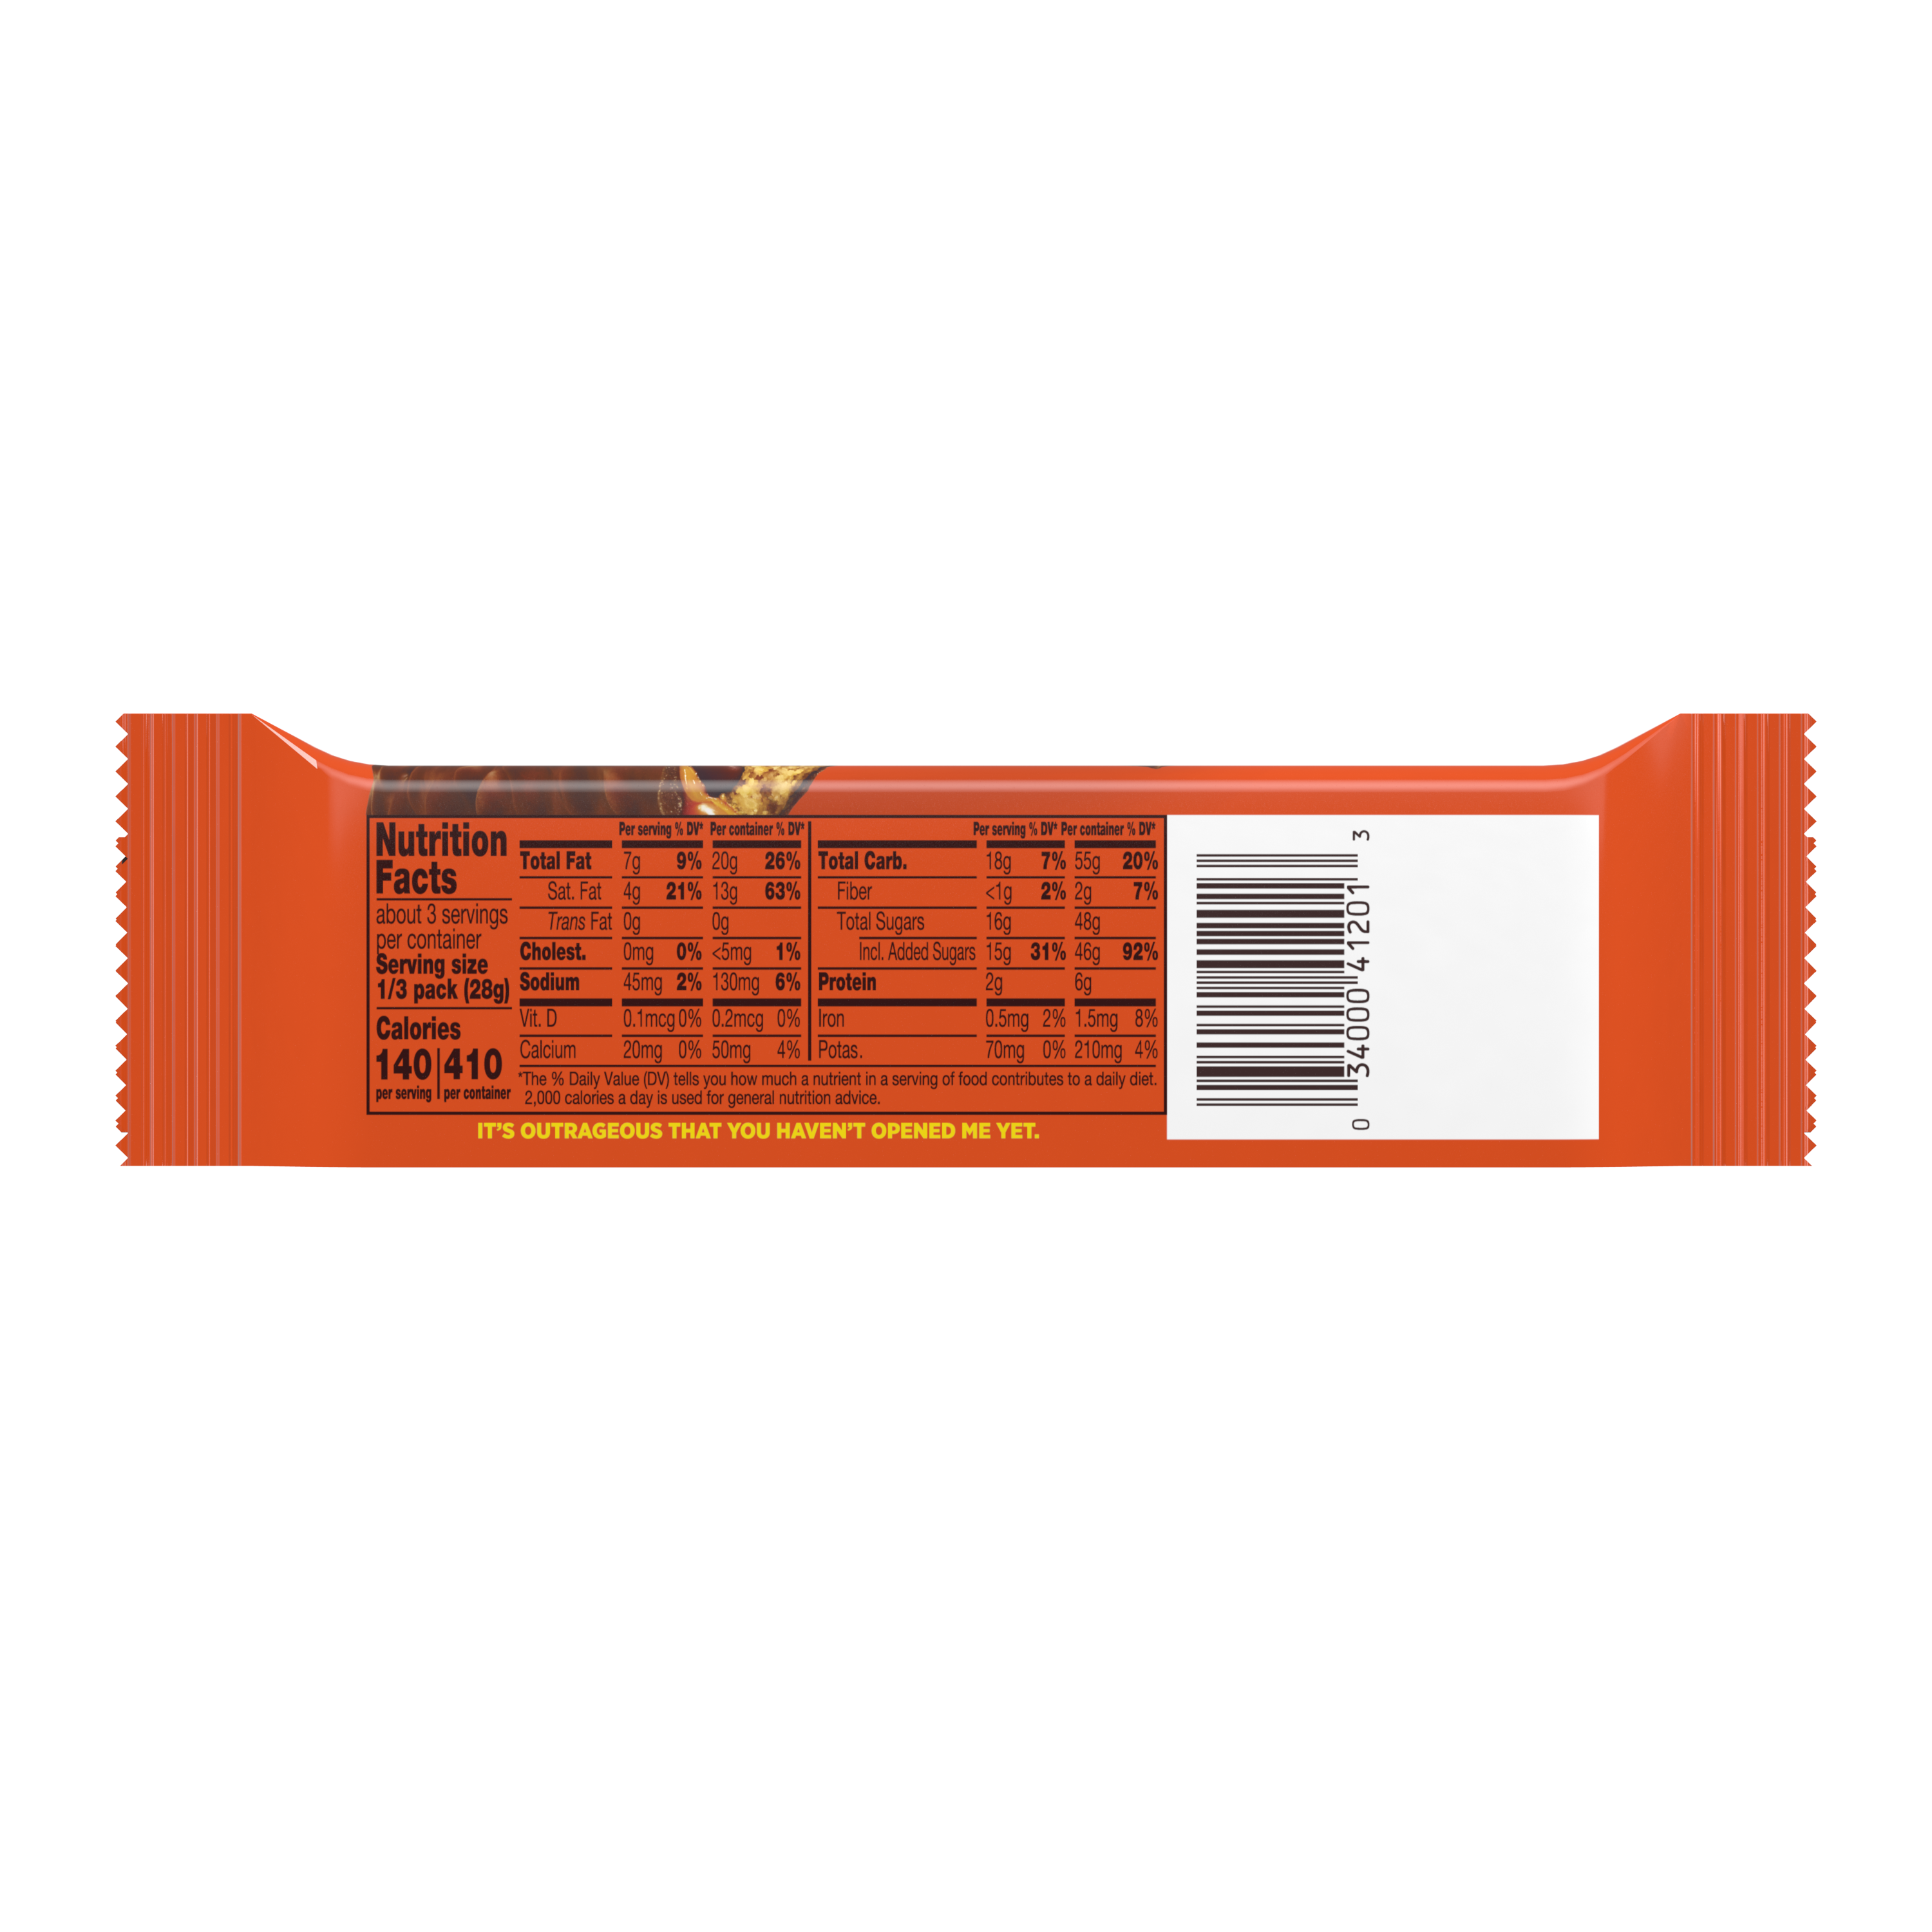 REESE'S OUTRAGEOUS! Milk Chocolate Peanut Butter King Size Candy Bar, 2.95 oz - Back of Package